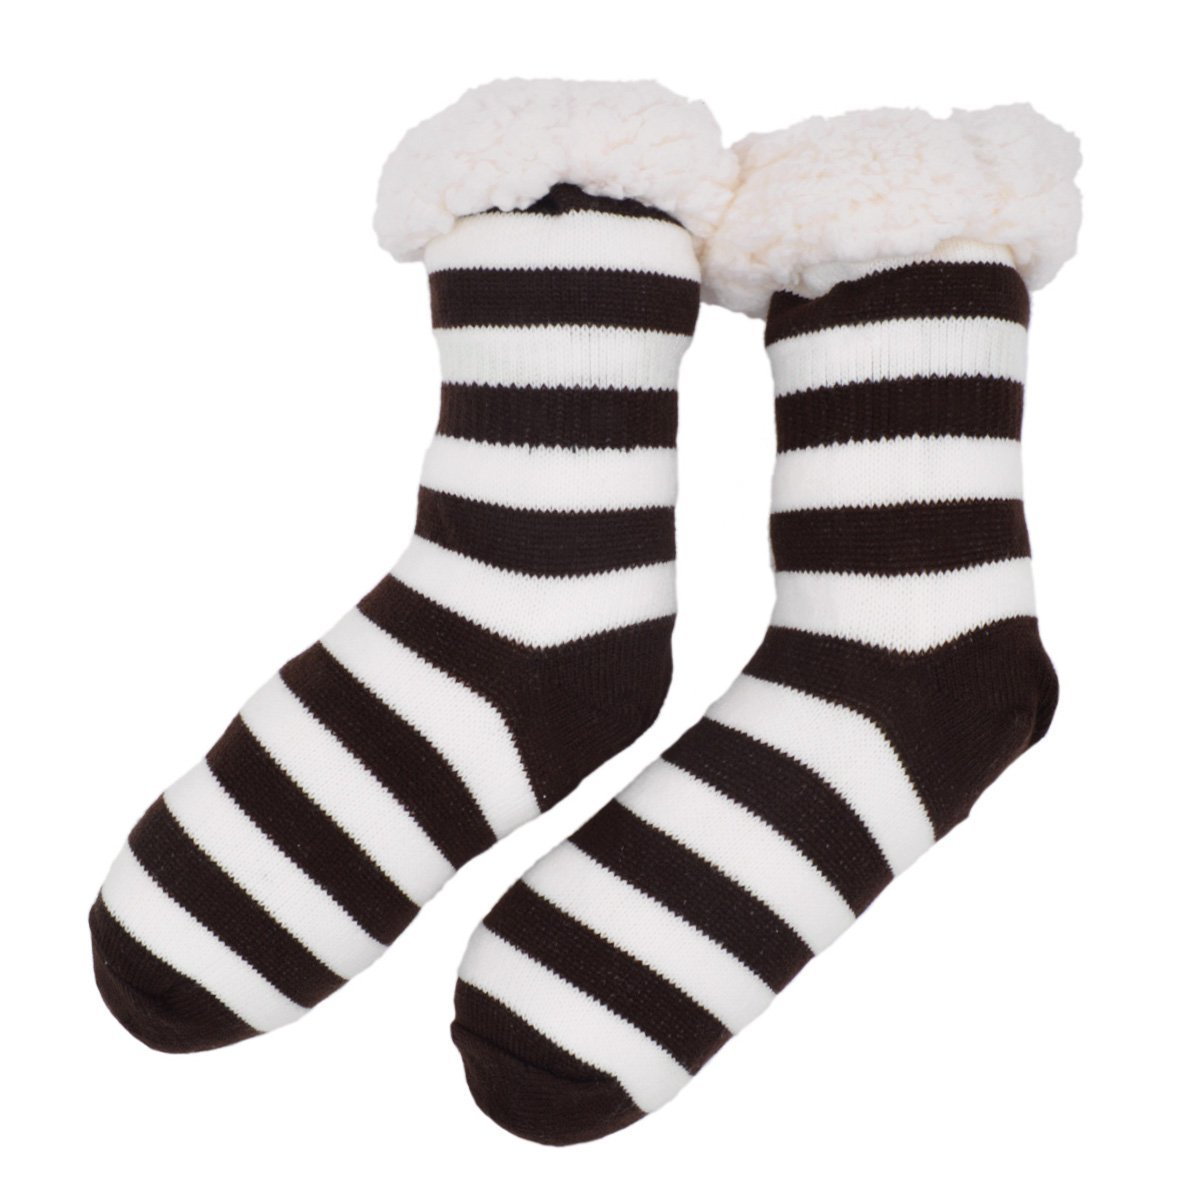 Extra Thick Striped Thermal Fleece-lined Knitted Plush Winter Socks Black SOG807BLK